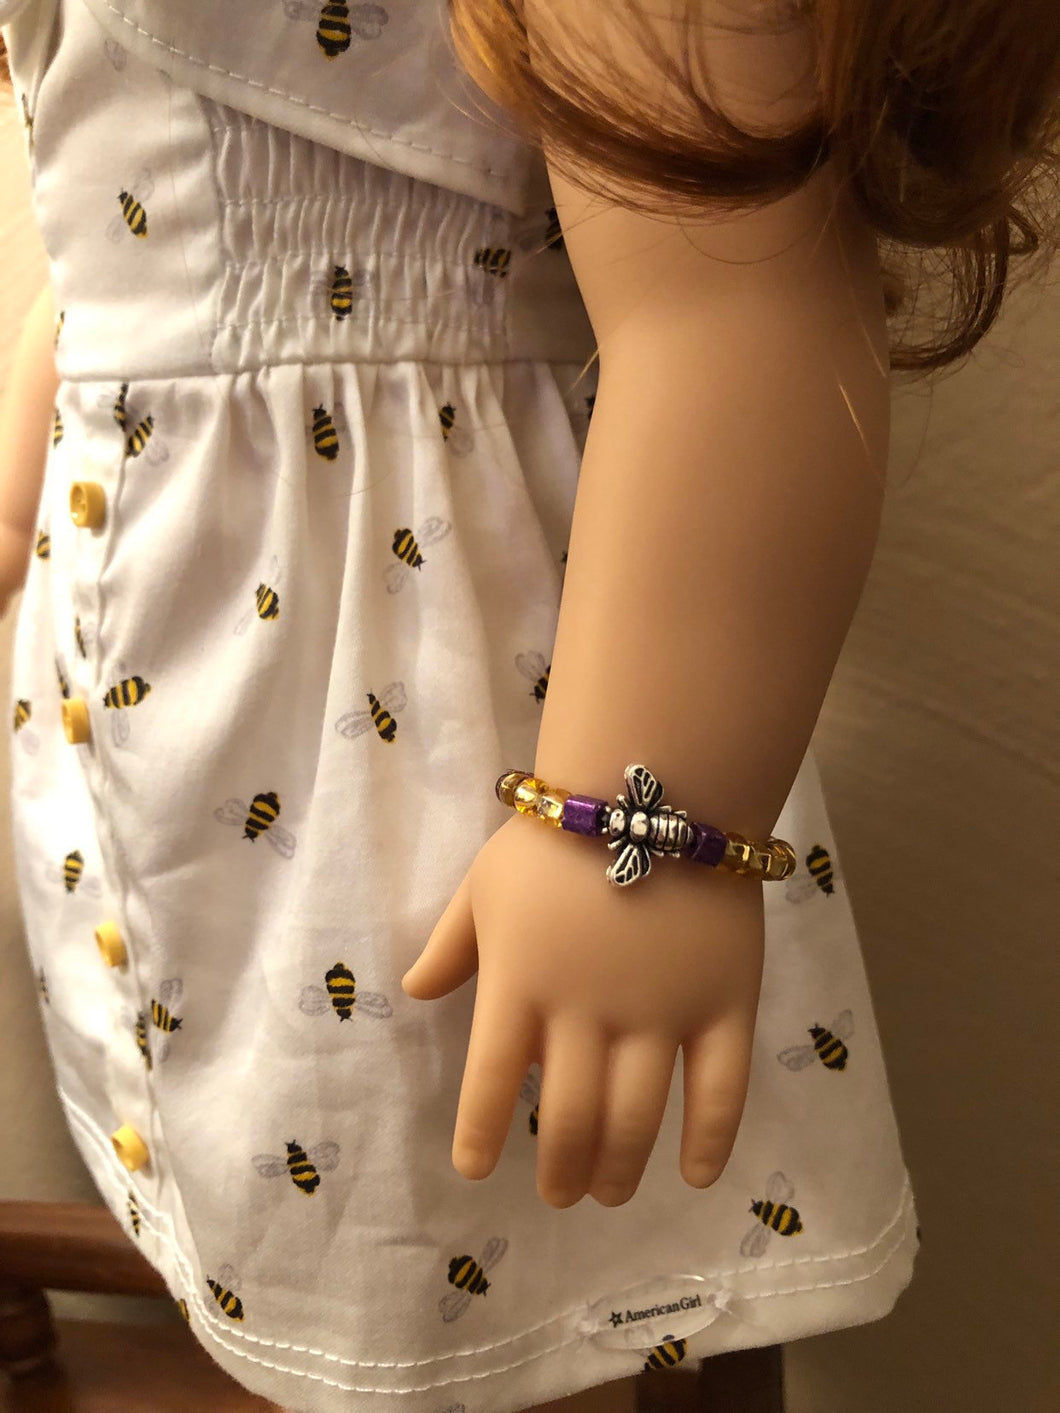 Bumble Bee Bracelet for American Girl of the Year Blaire Wilson